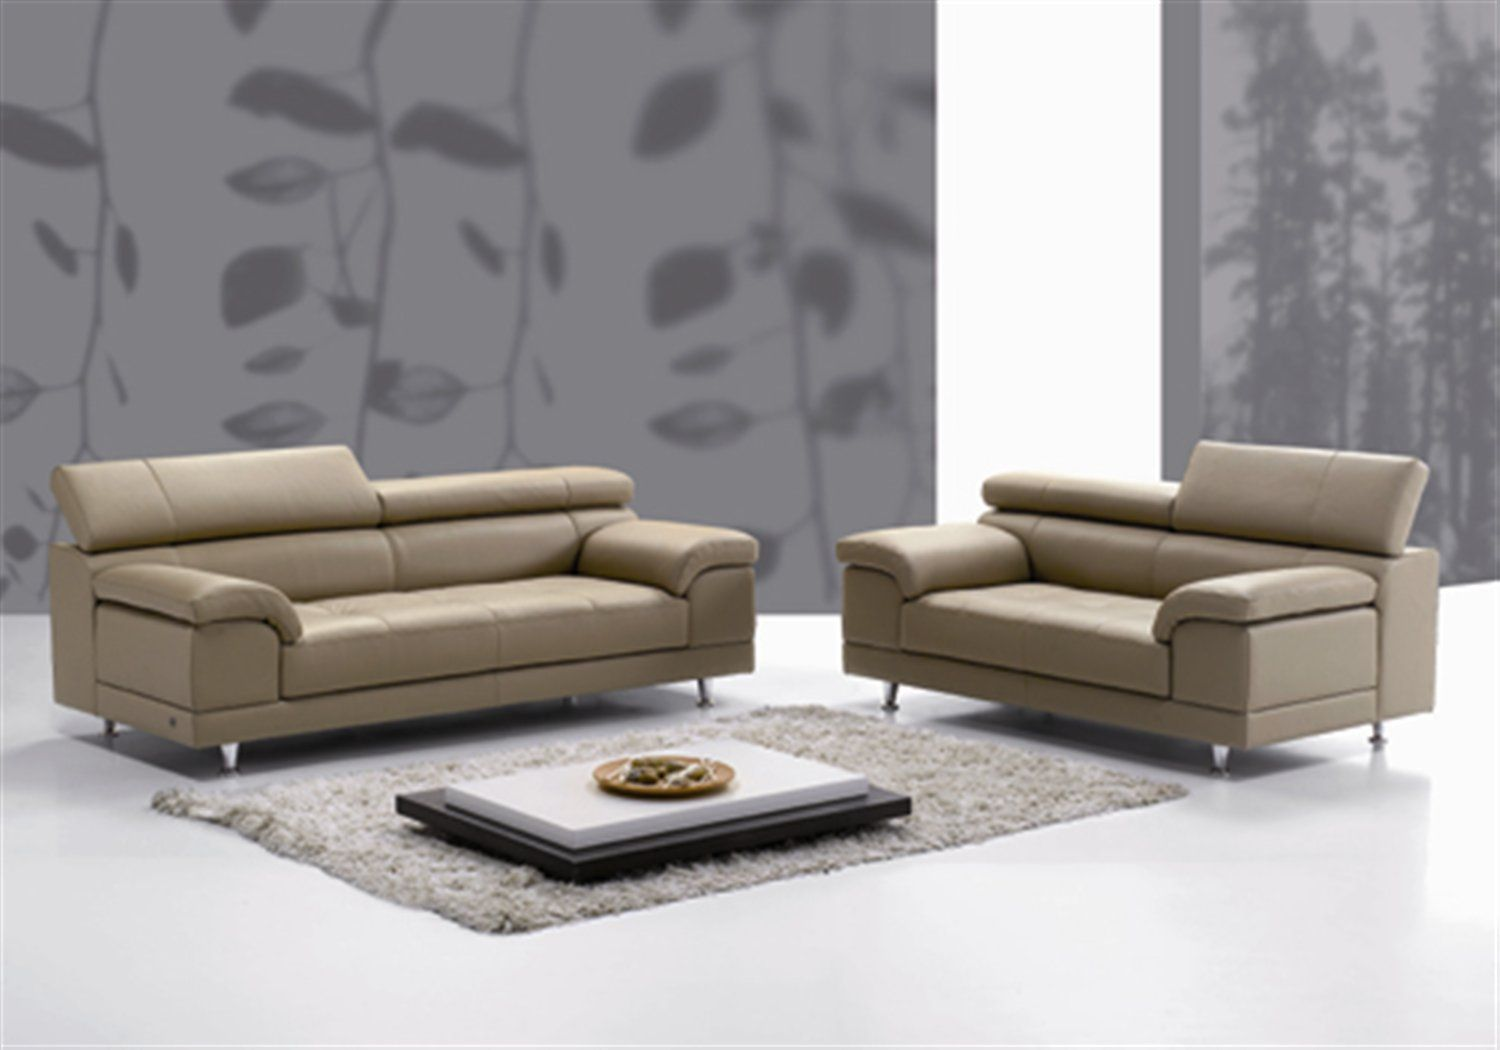 huge italian white leather modern sectional sofa set bed fast delivery uk stunning piquattro sofas idea ground